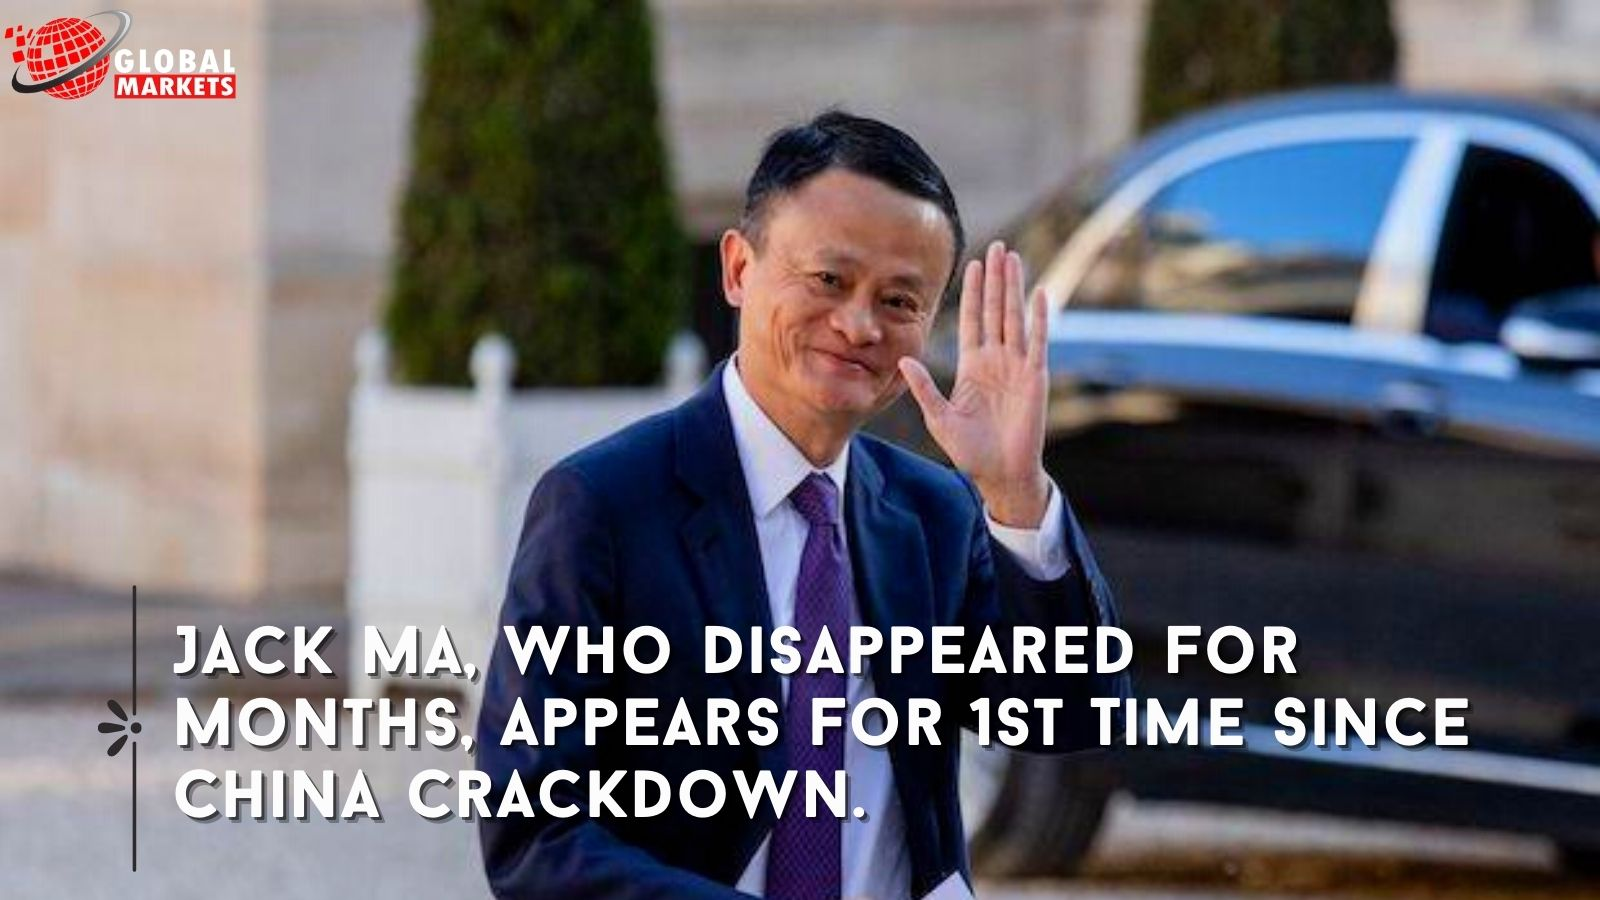 Jack Ma, Who Disappeared For Months, Appears For 1st Time Since China Crackdown.